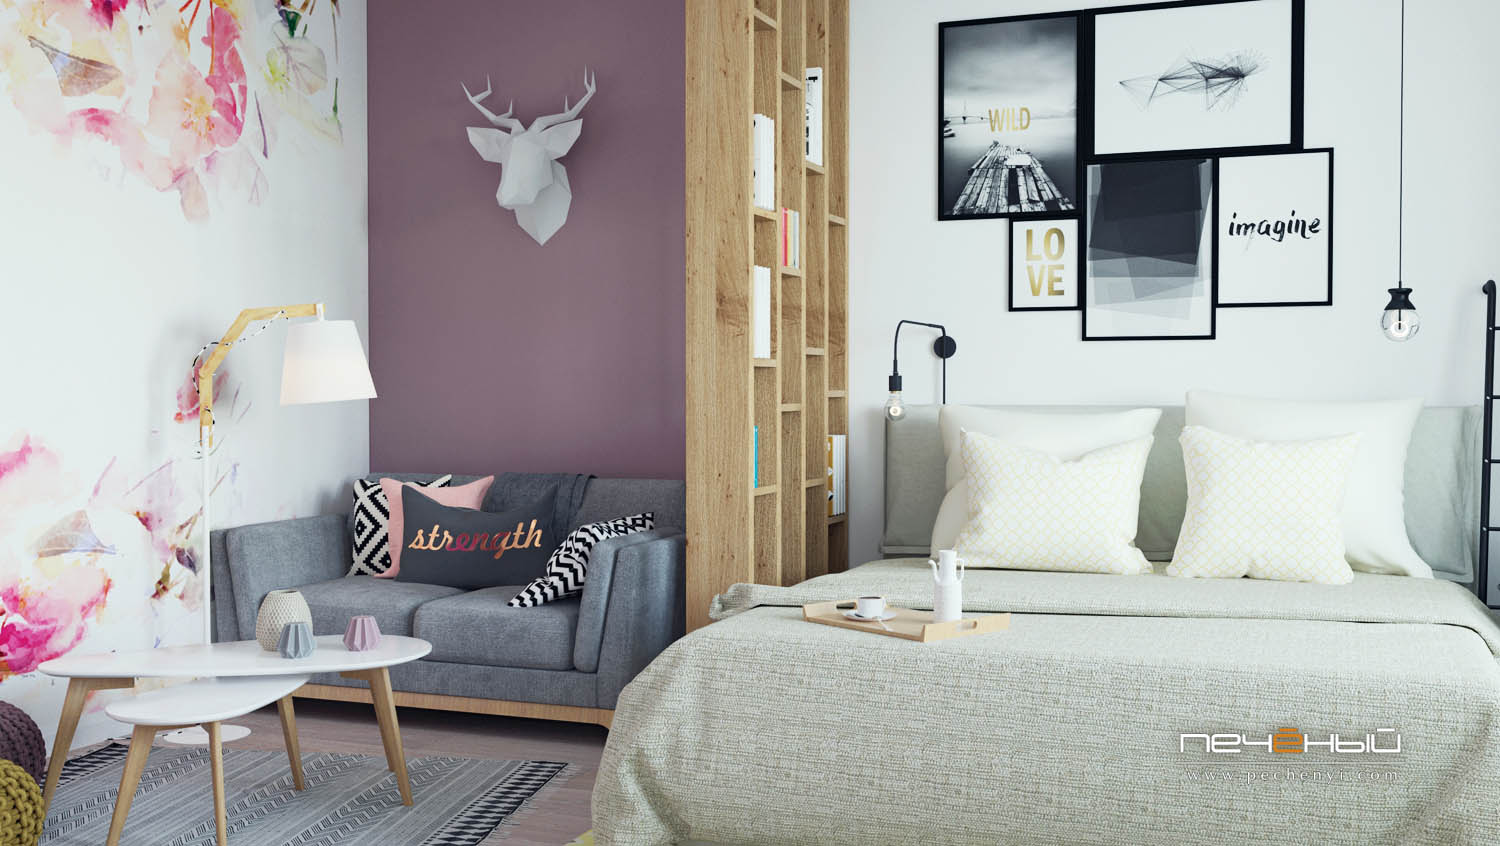 This modern apartment is created for young girl, it's full of creative solutions and cute girlish touches